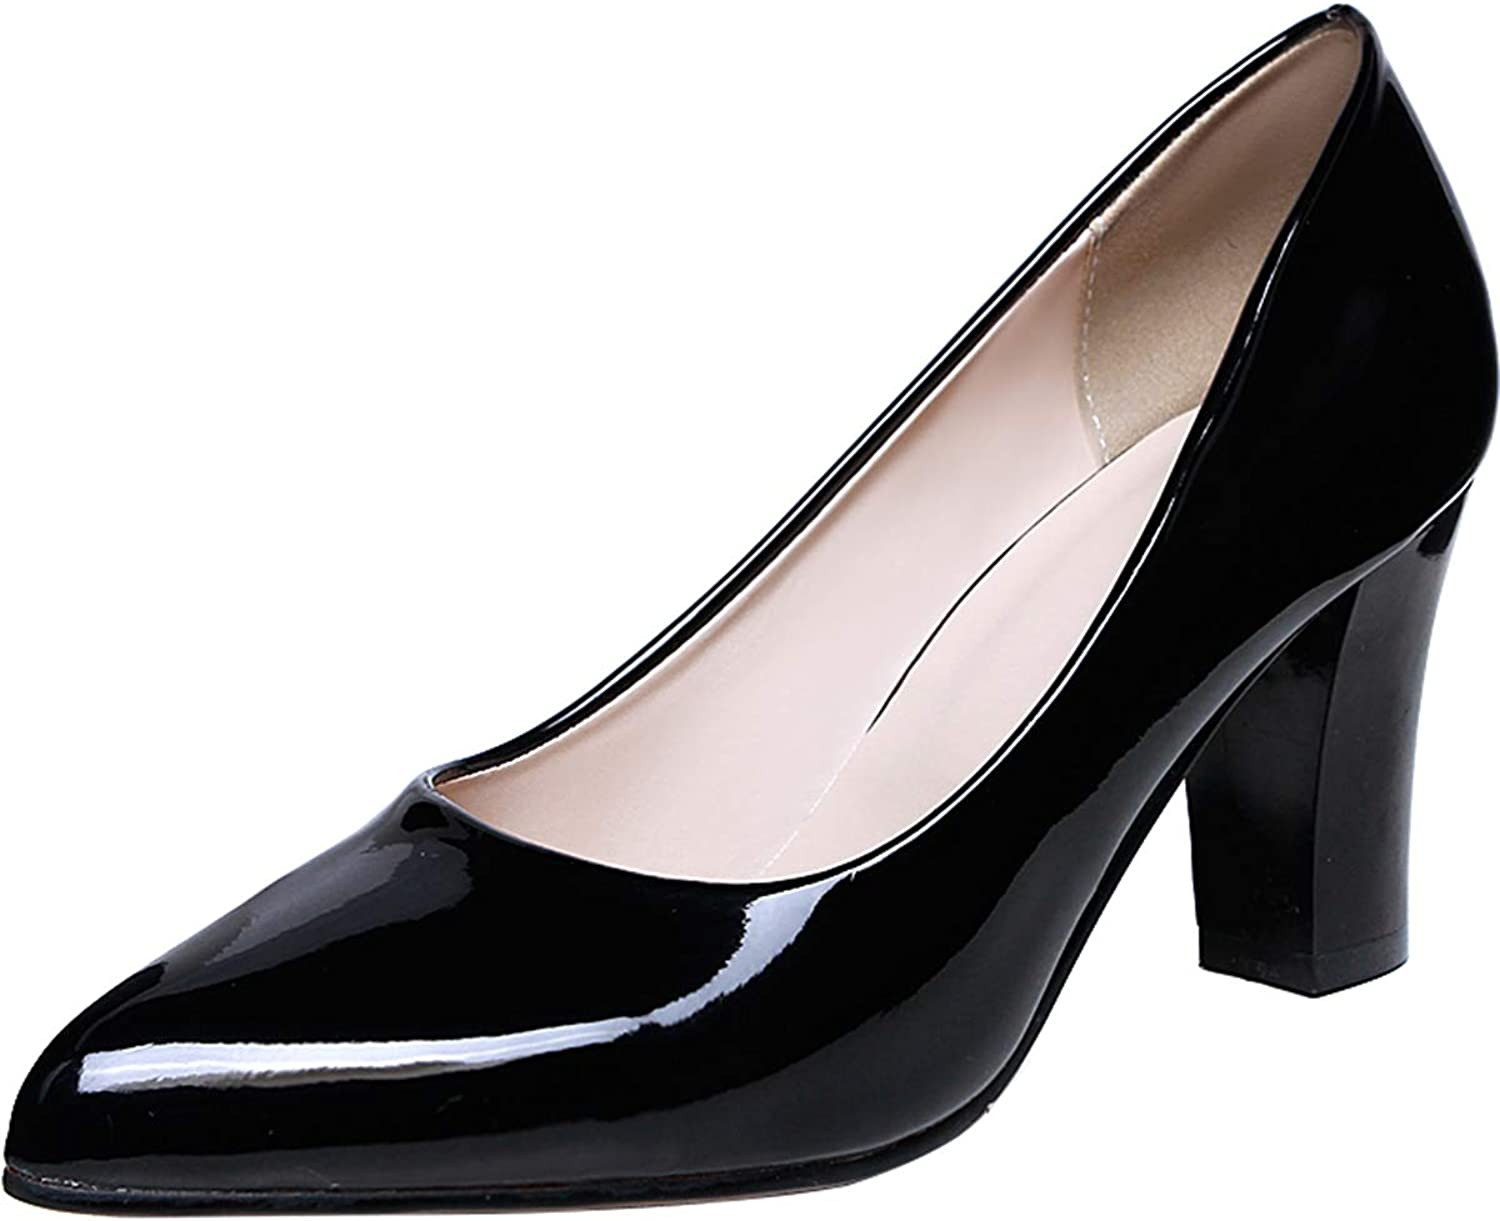 Sekesin Women's Block Heel Patent Leather Closed Toe Pumps Office Dress Pump shoes